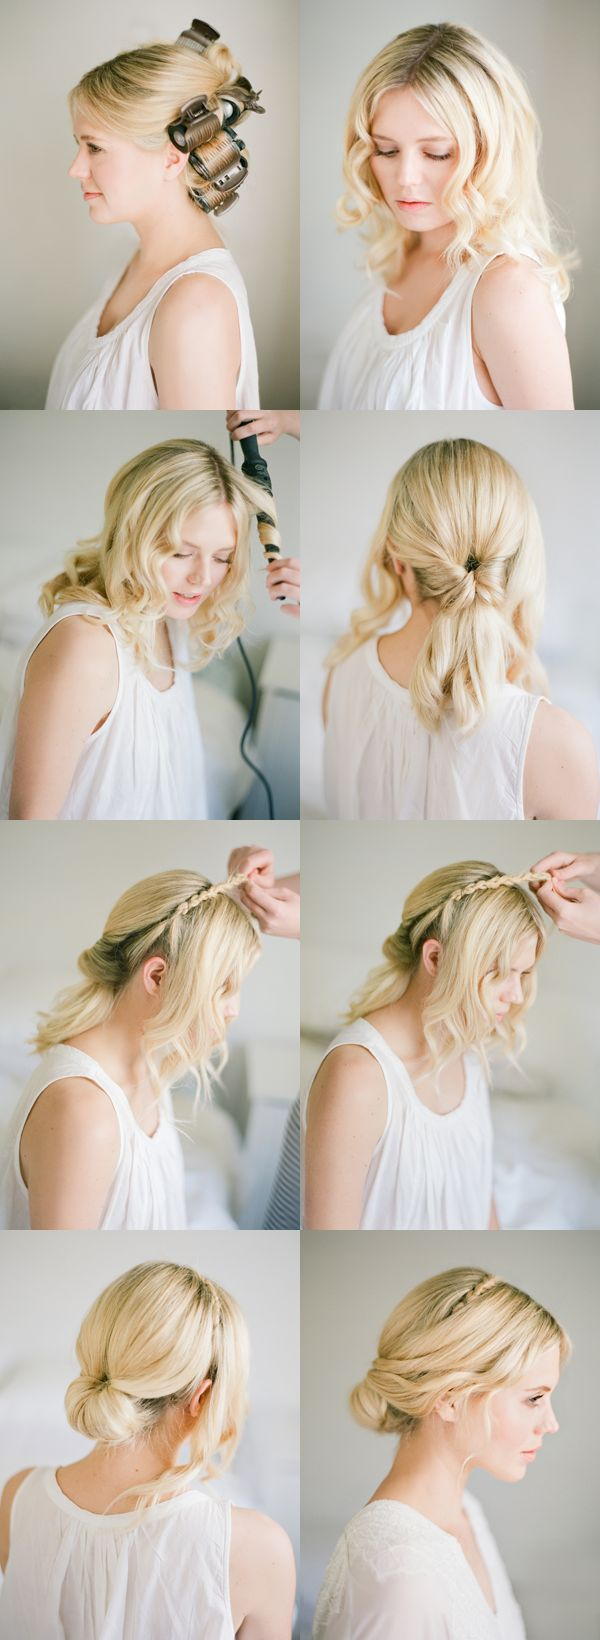 DIY Low Twisted Bun http://www.oncewed.com/diy/diy-low-twisted-bun/